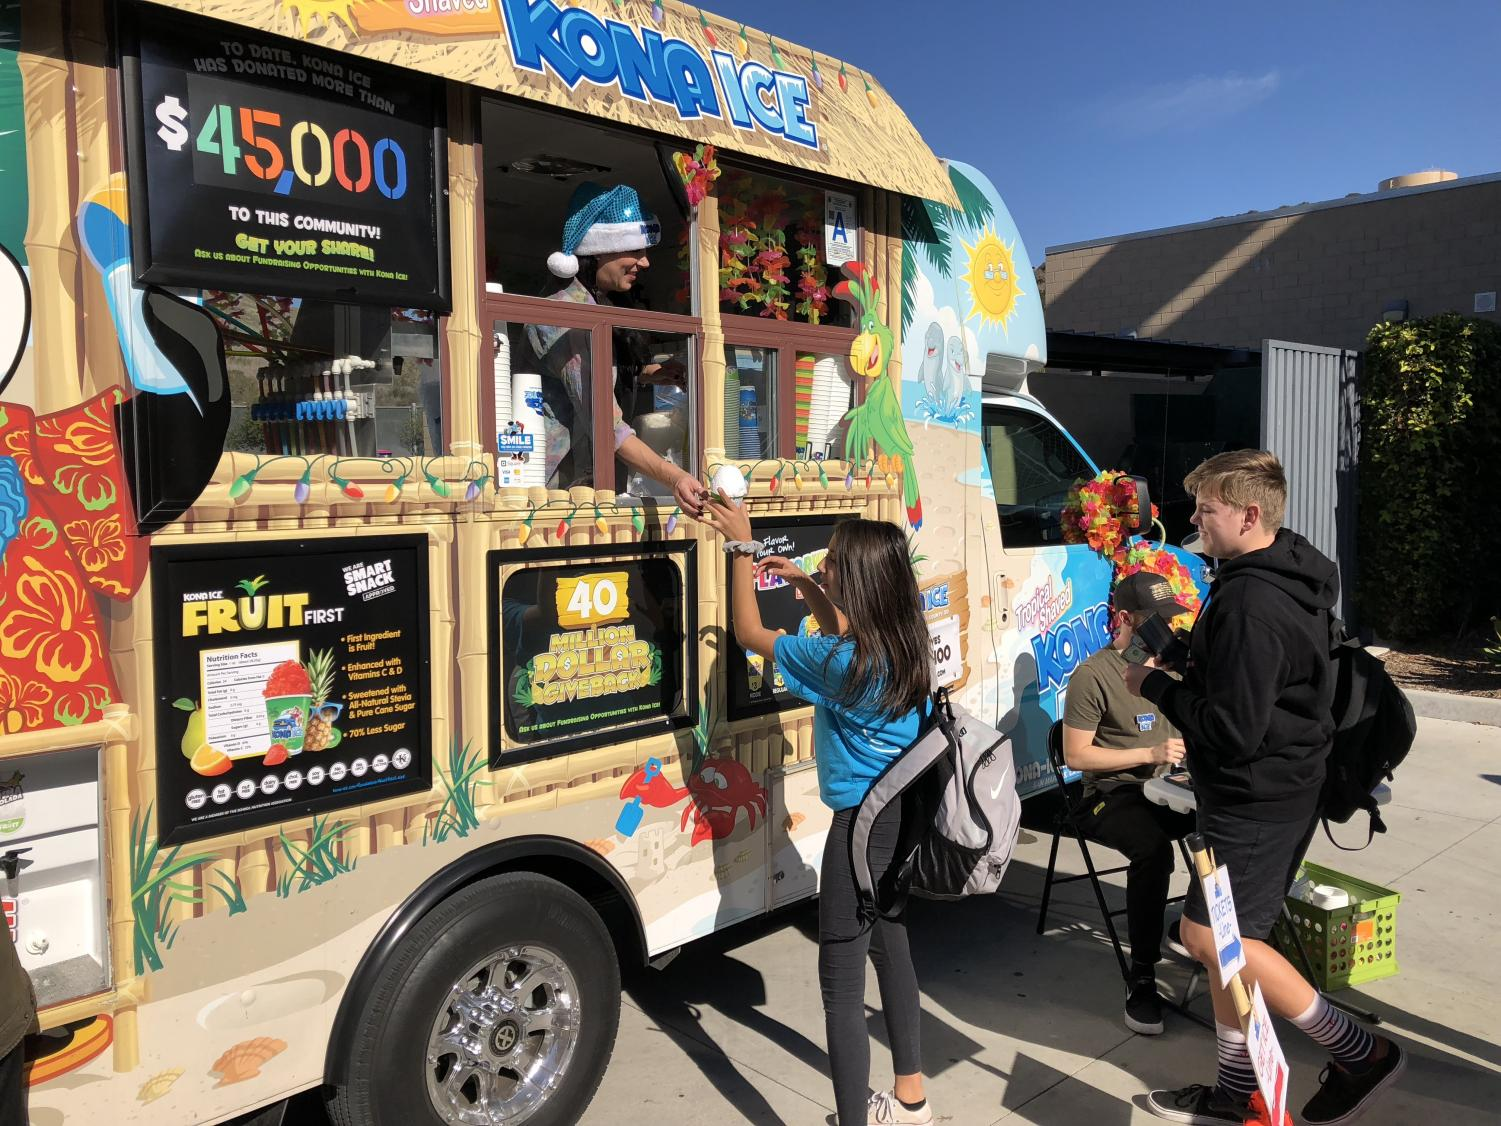 Students+gather+at+the+Kona+Ice+truck+to+collect+their+frozen+treats.+Students+who+brought+in+three+or+more+cans+for+the+canned+food+drive+fundraiser+received+a+discounted+Kona+Ice+treat+and+the+winning+class+received+free+Kona.